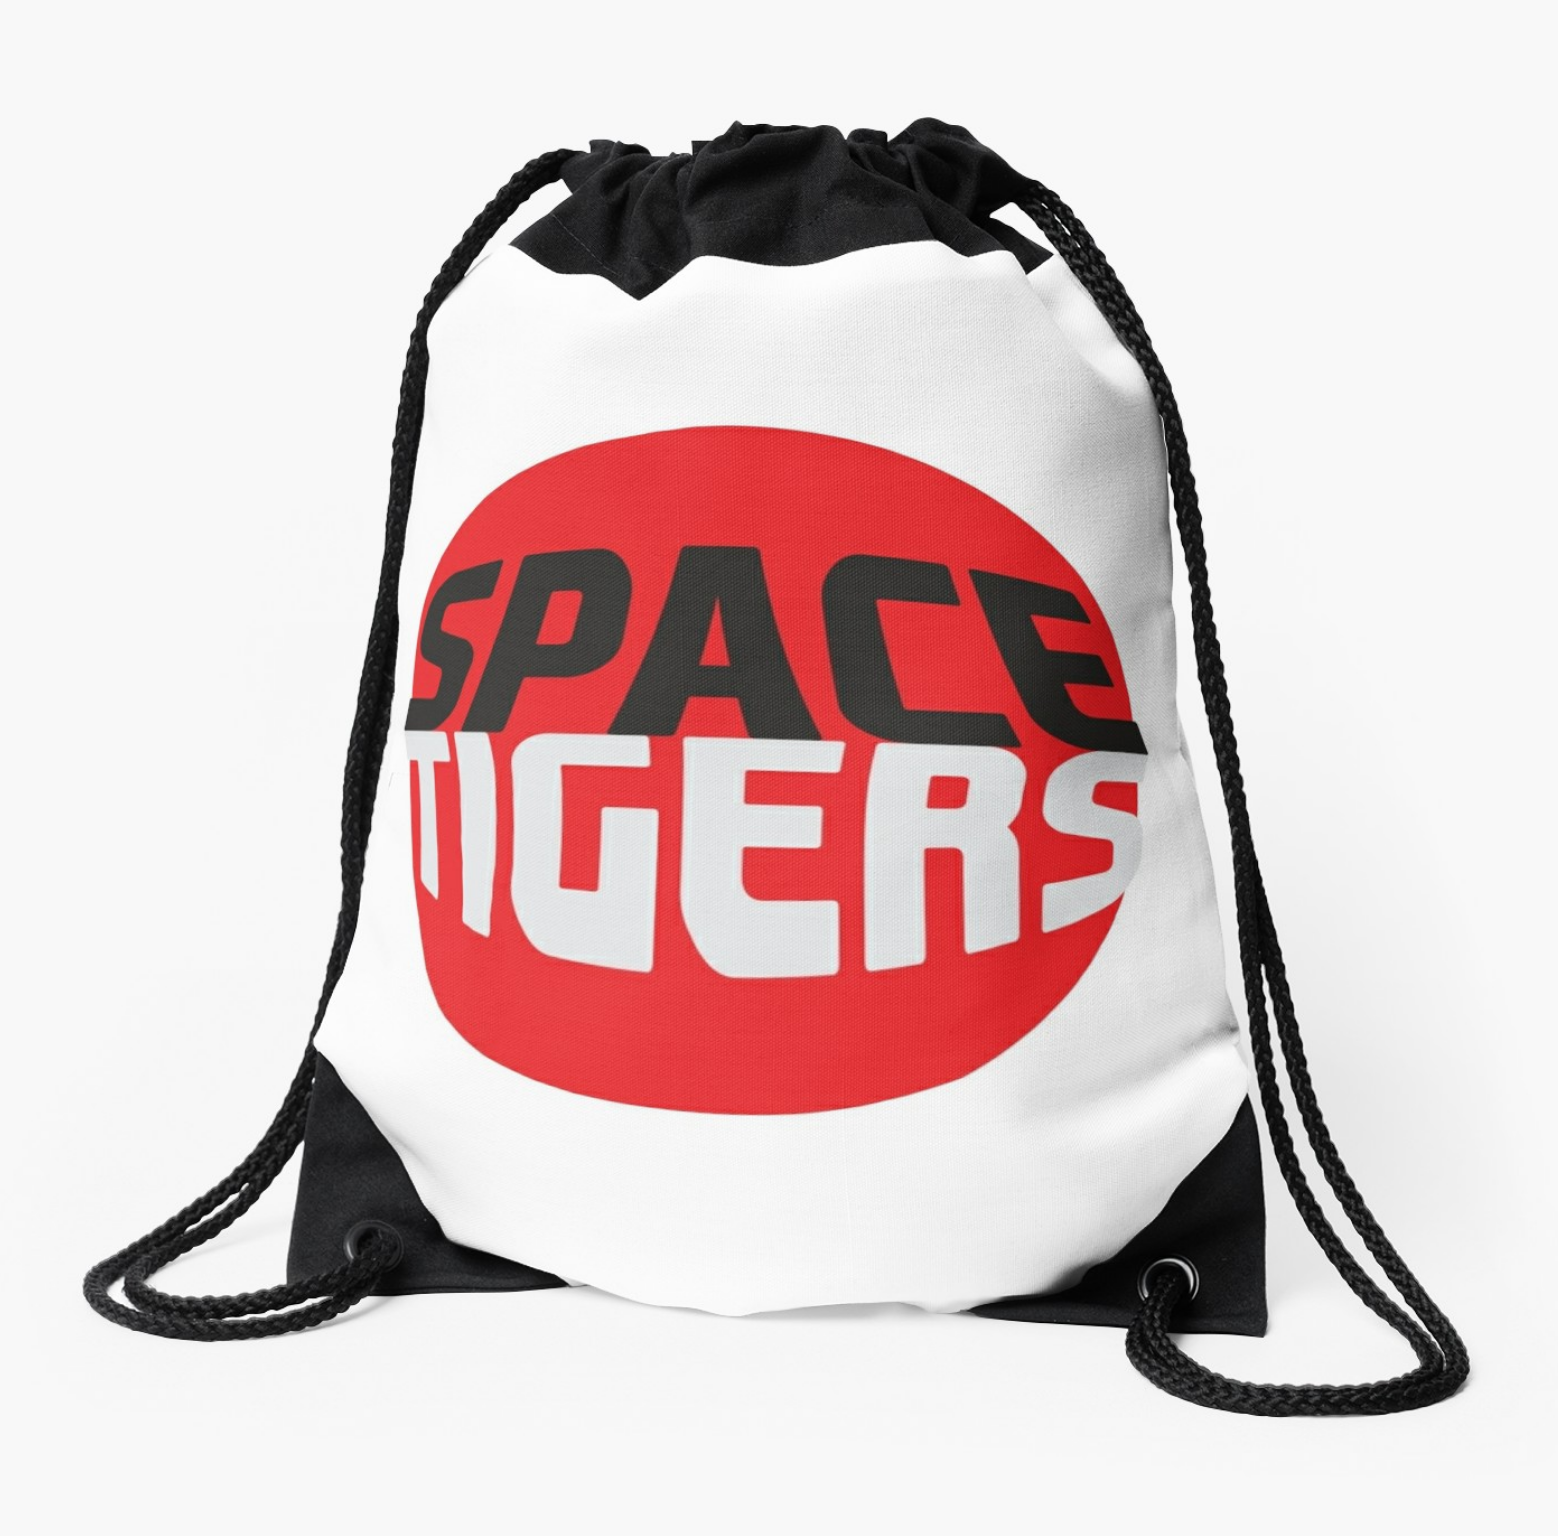 space tigers ruksak